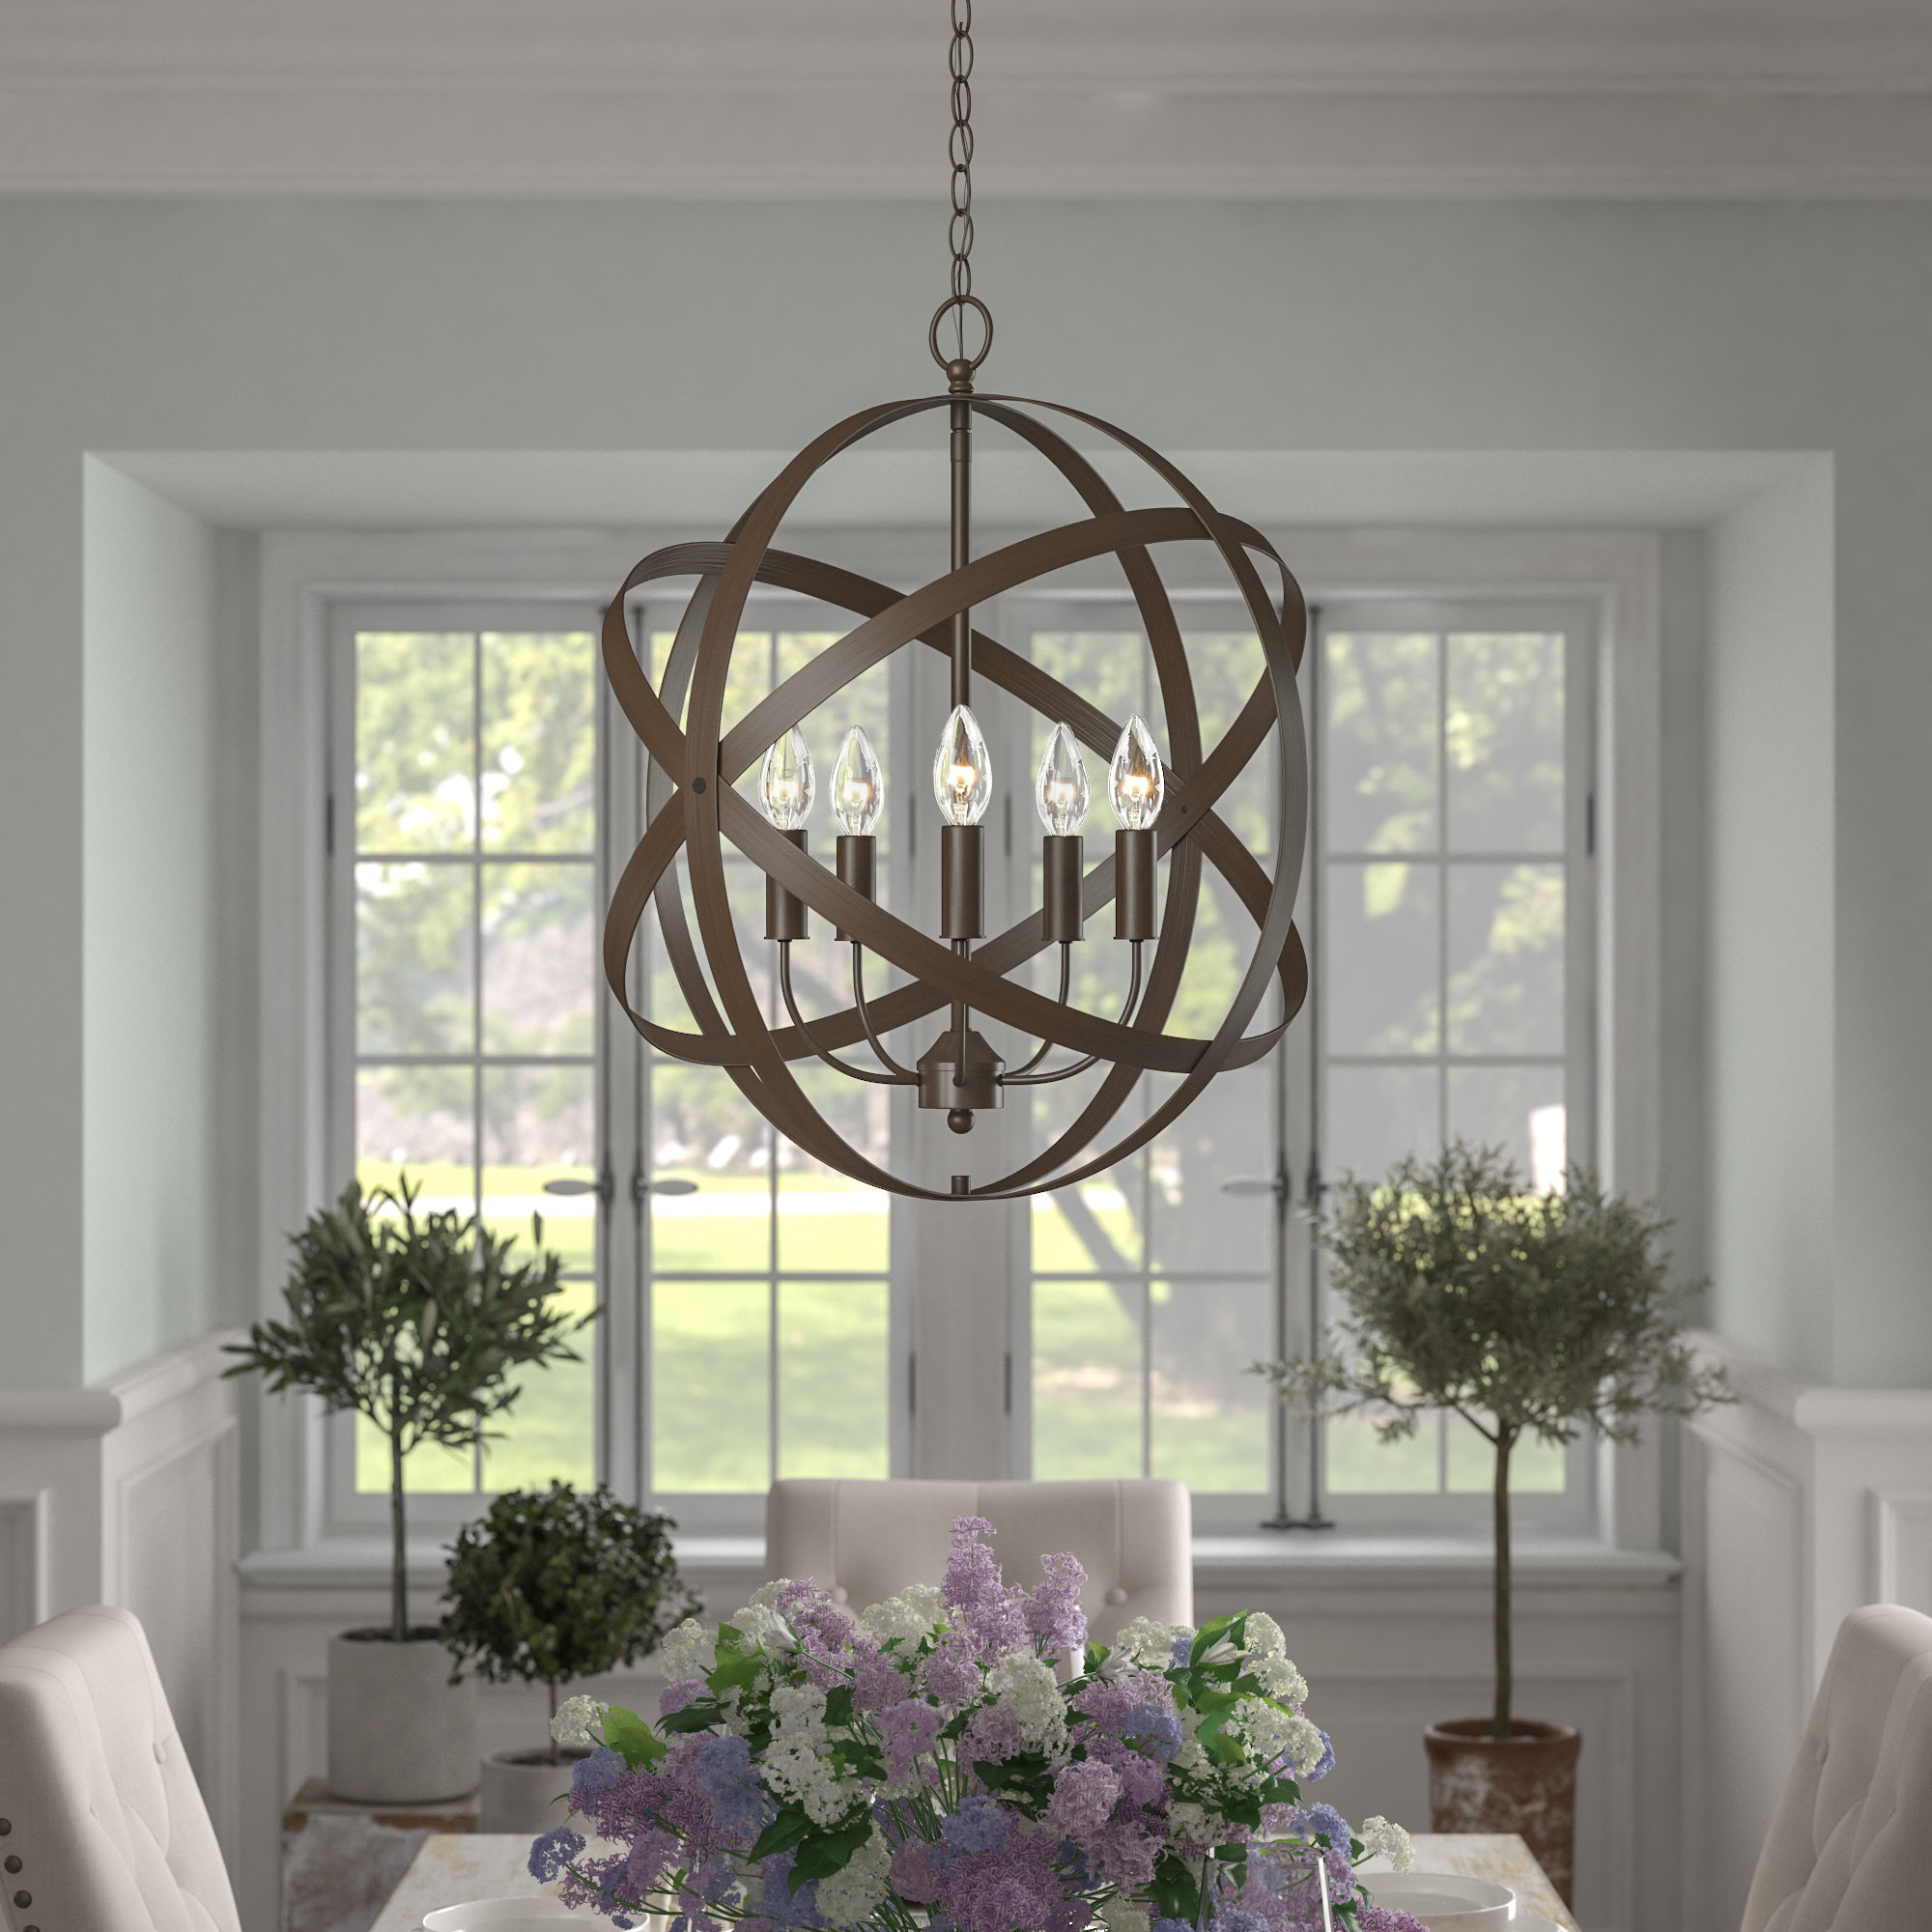 Della 5-Light Globe Chandelier for Popular Waldron 5-Light Globe Chandeliers